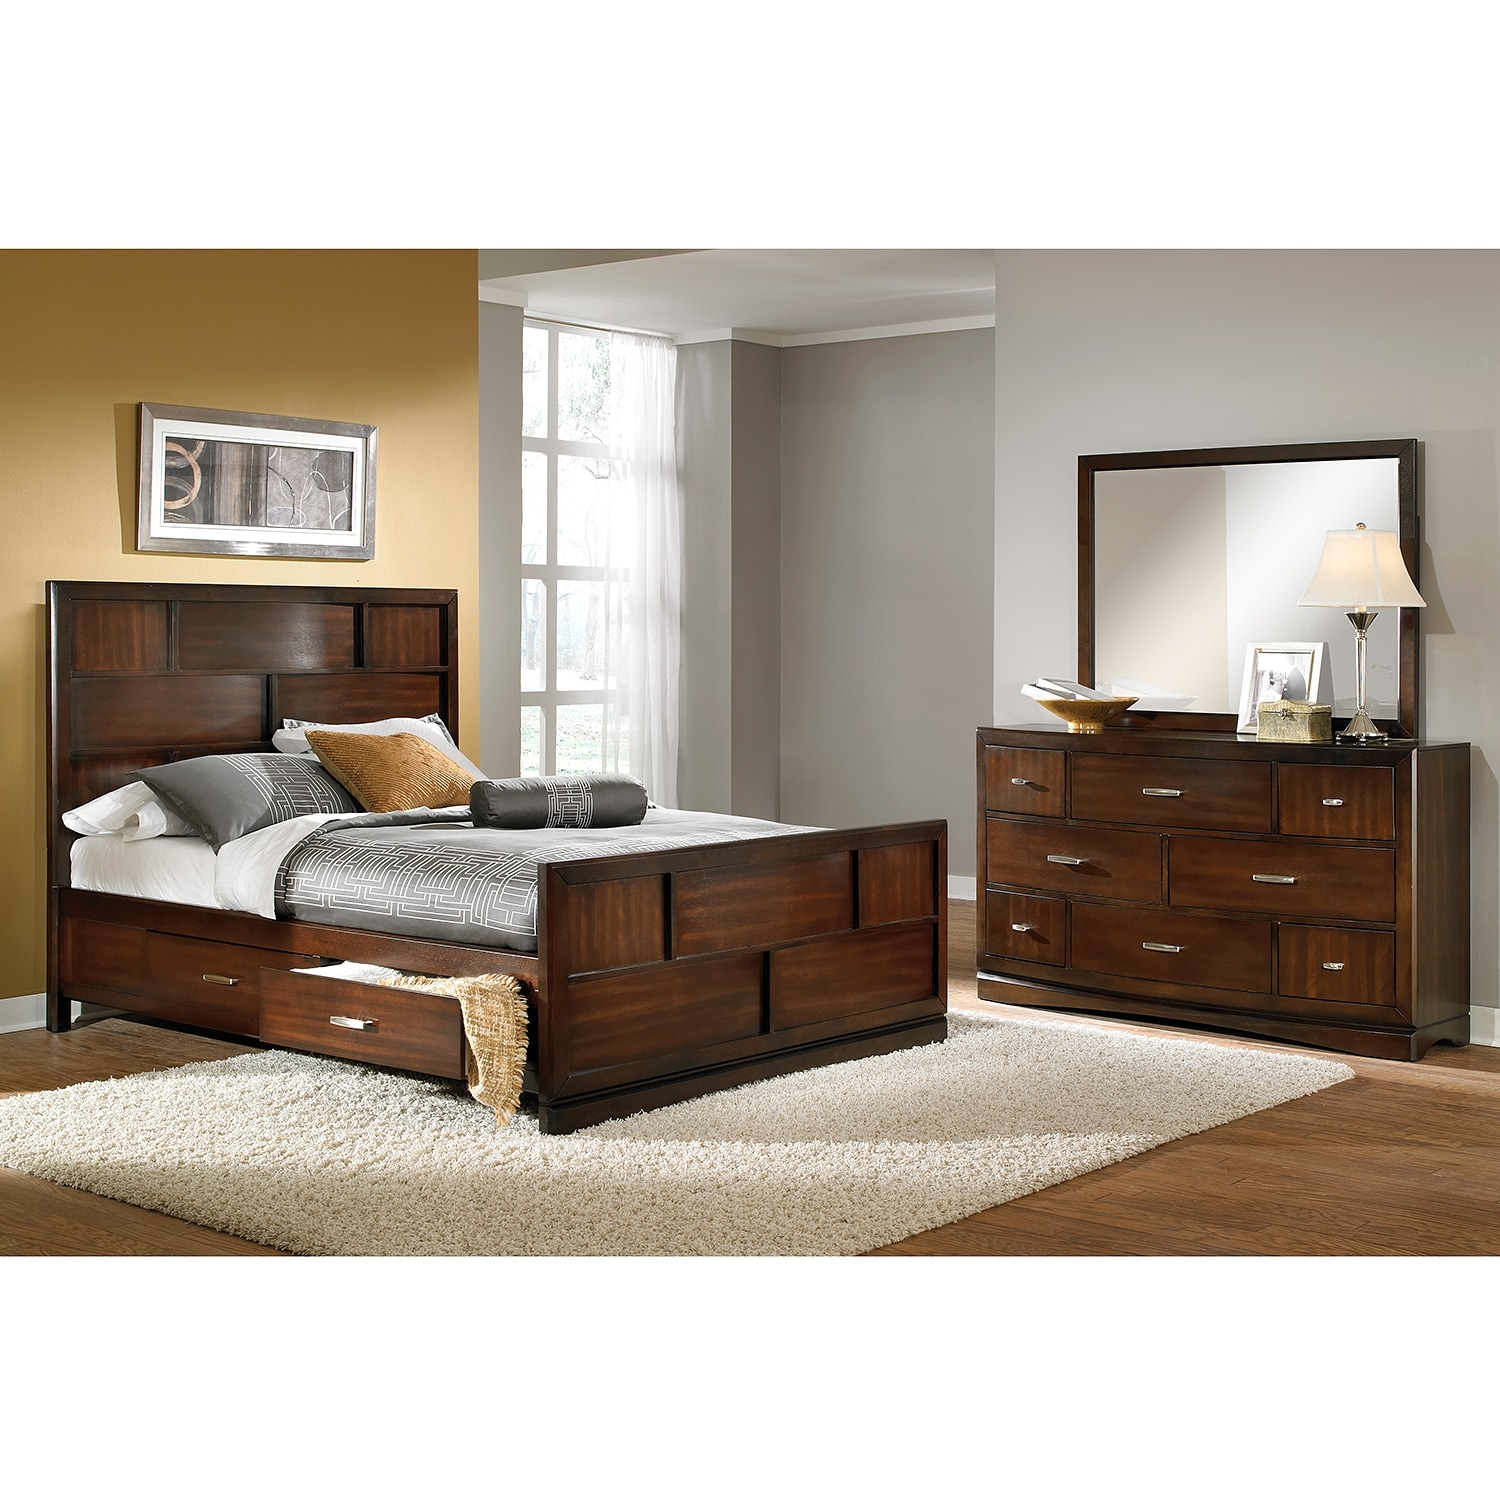 bedroom furniture toronto 5 piece king storage bedroom set pecan